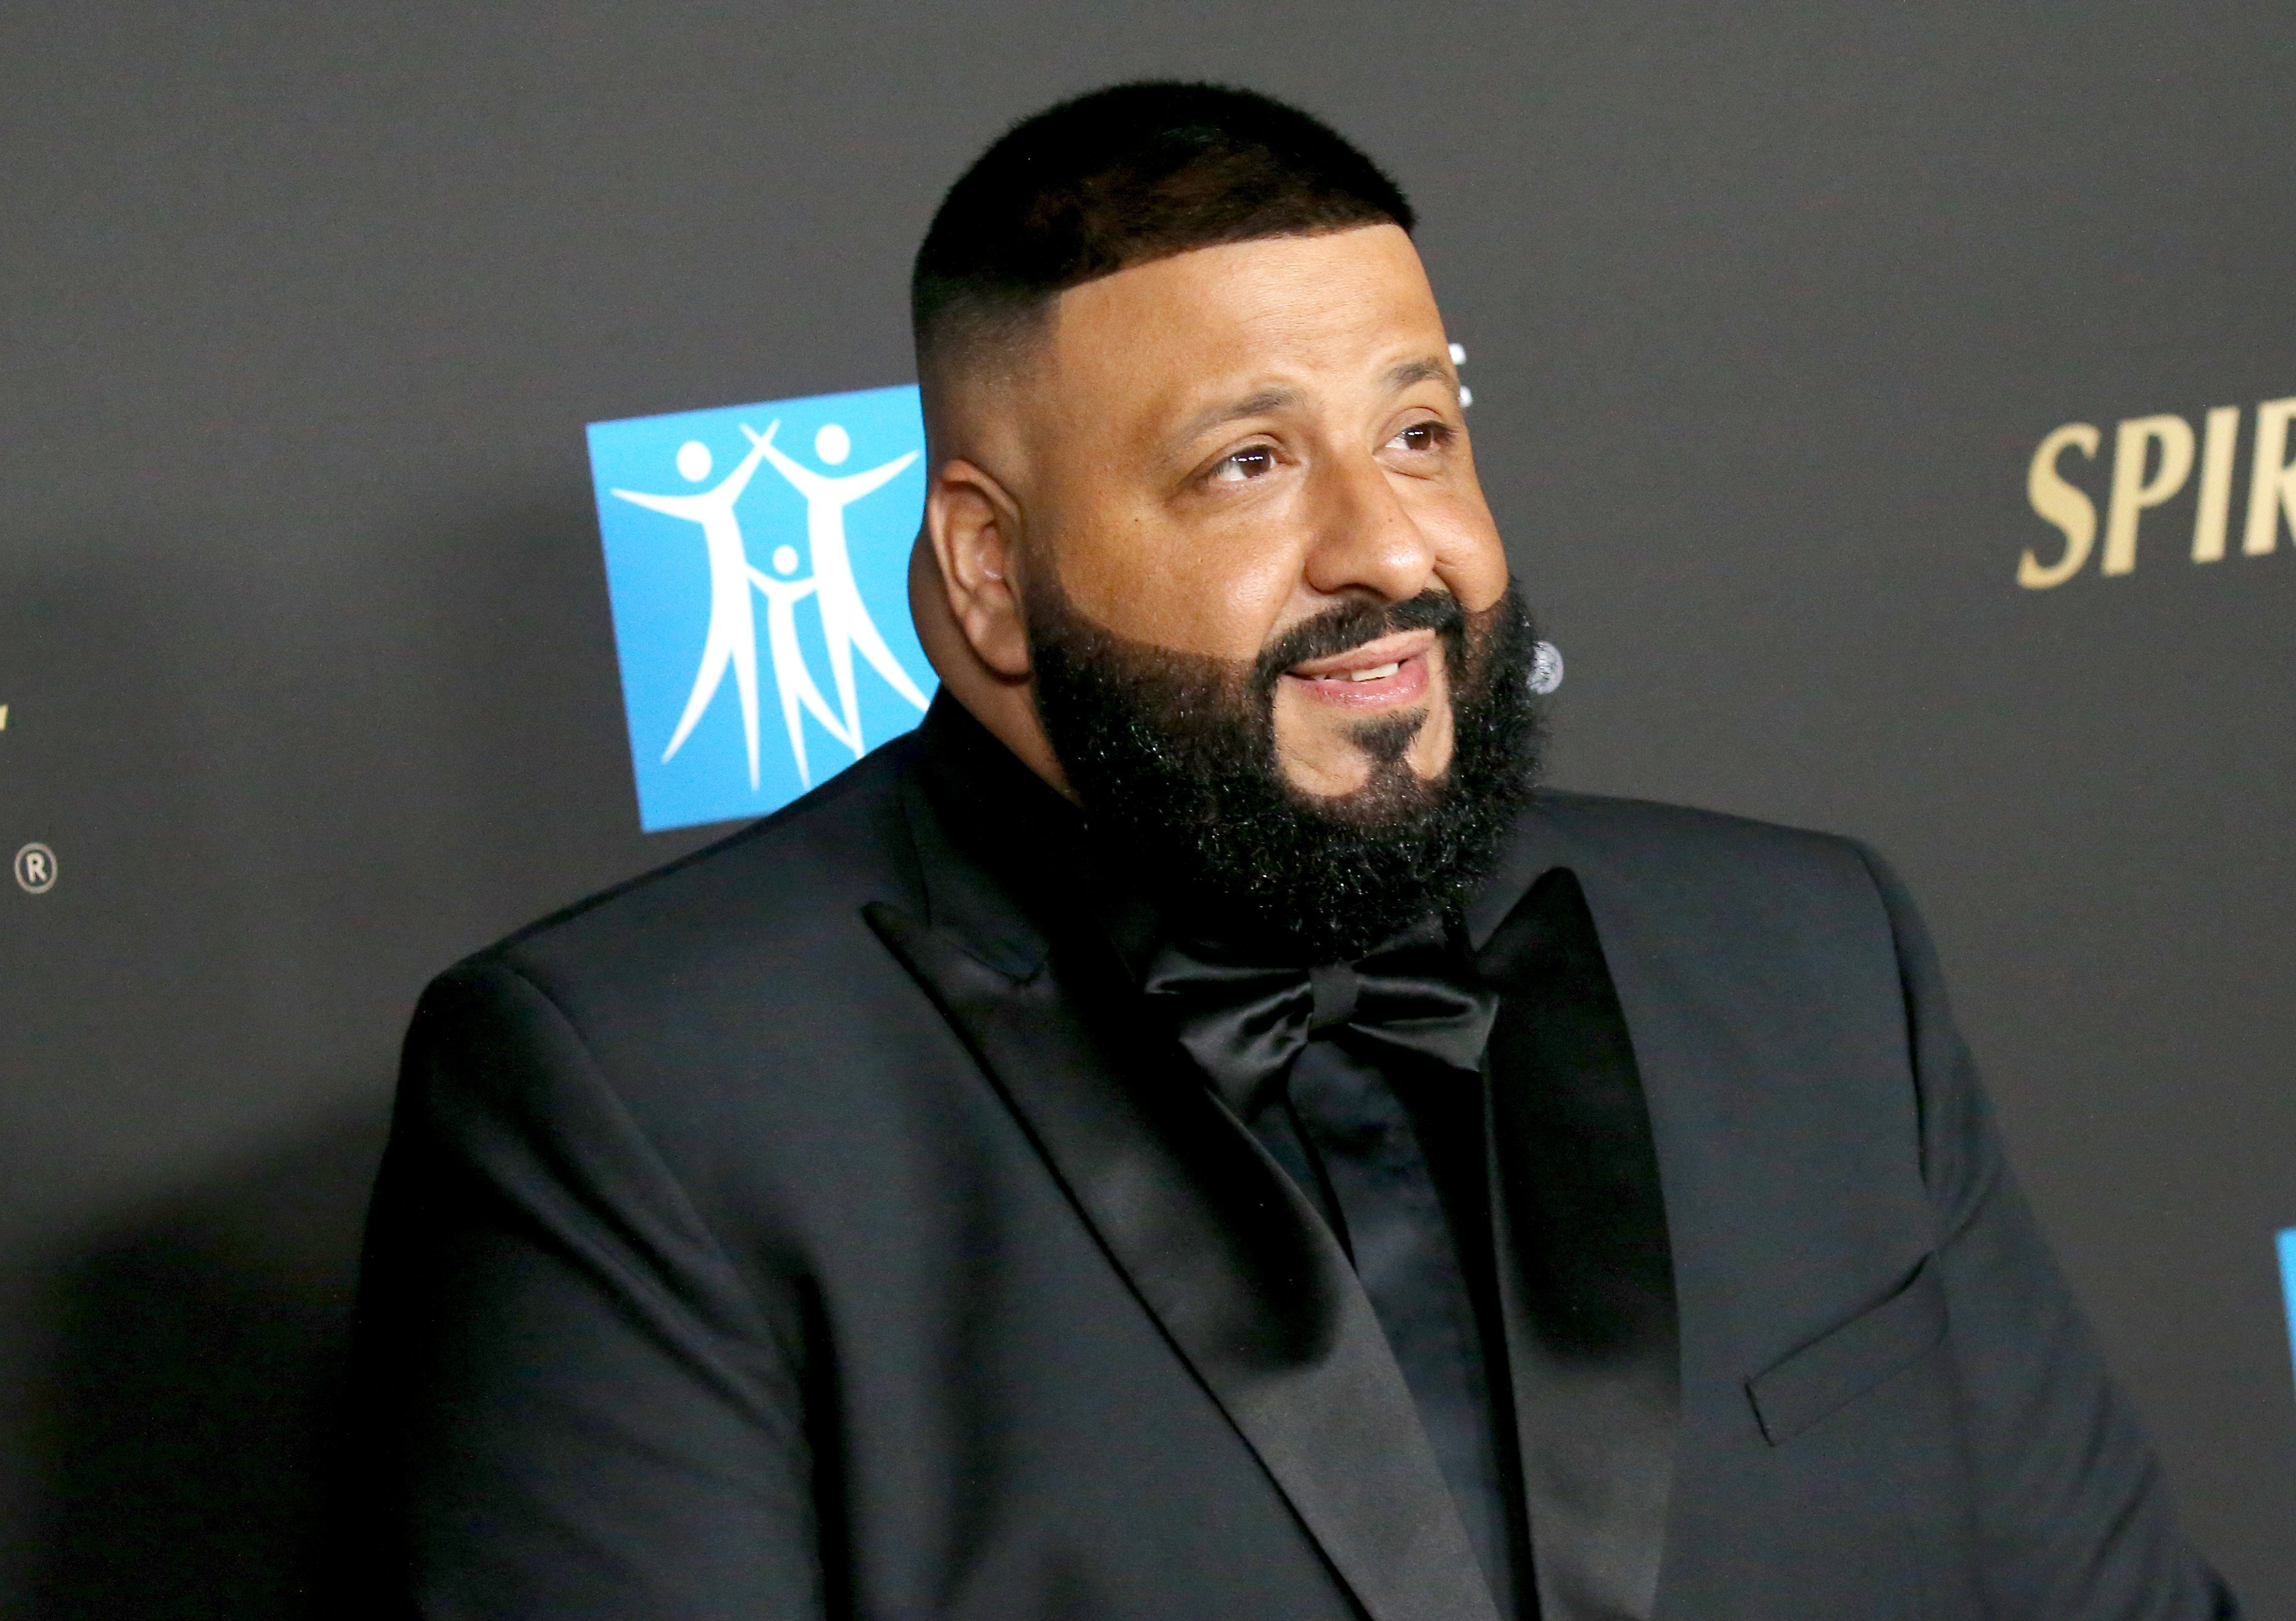 DJ Khaled attends the City Of Hope's Spirit of Life 2019 Gala held at The Barker Hanger on October 10, 2019 | Photo: GettyImages